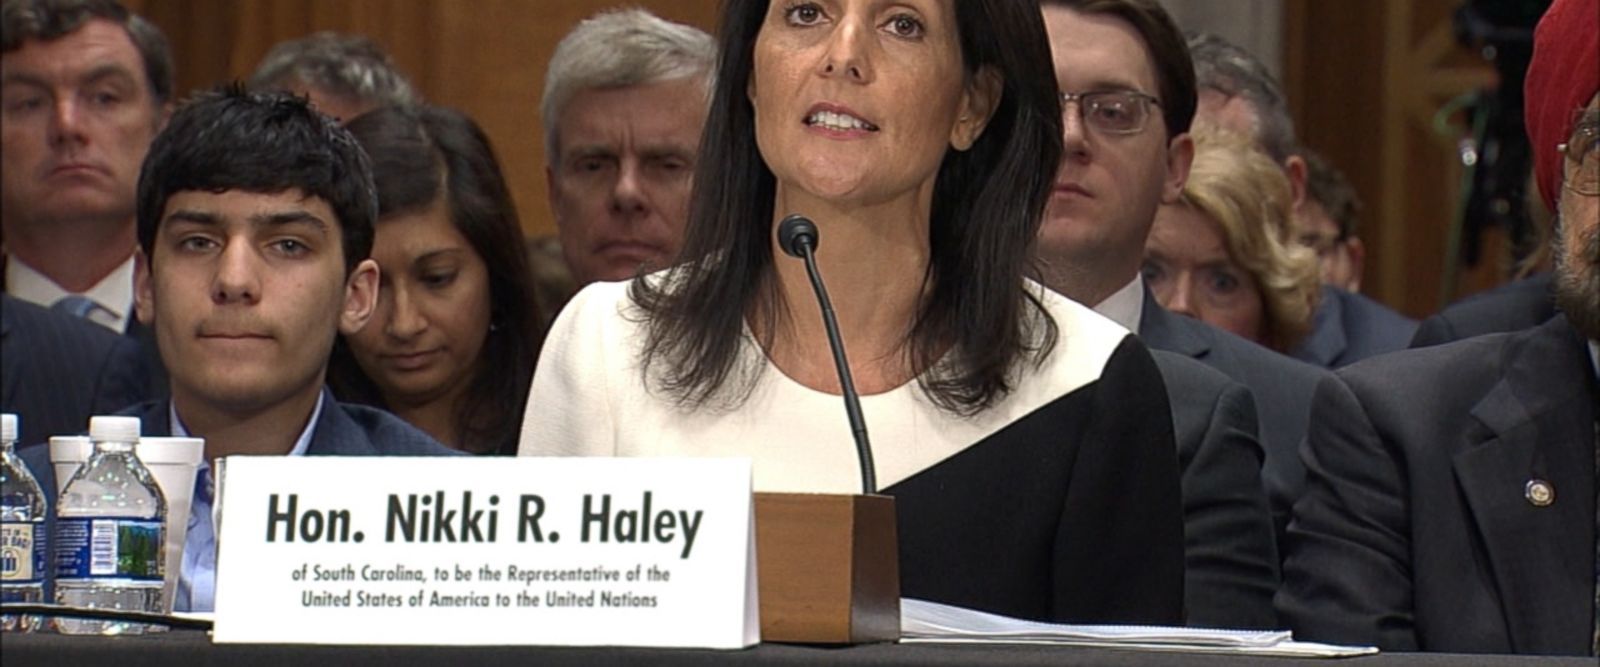 Testifying in front of the Senate Foreign Relations Committee, Gov. Nikki Haley said she believes Russia committed war crimes in Syria when it indiscriminately bombed hospitals in Aleppo.